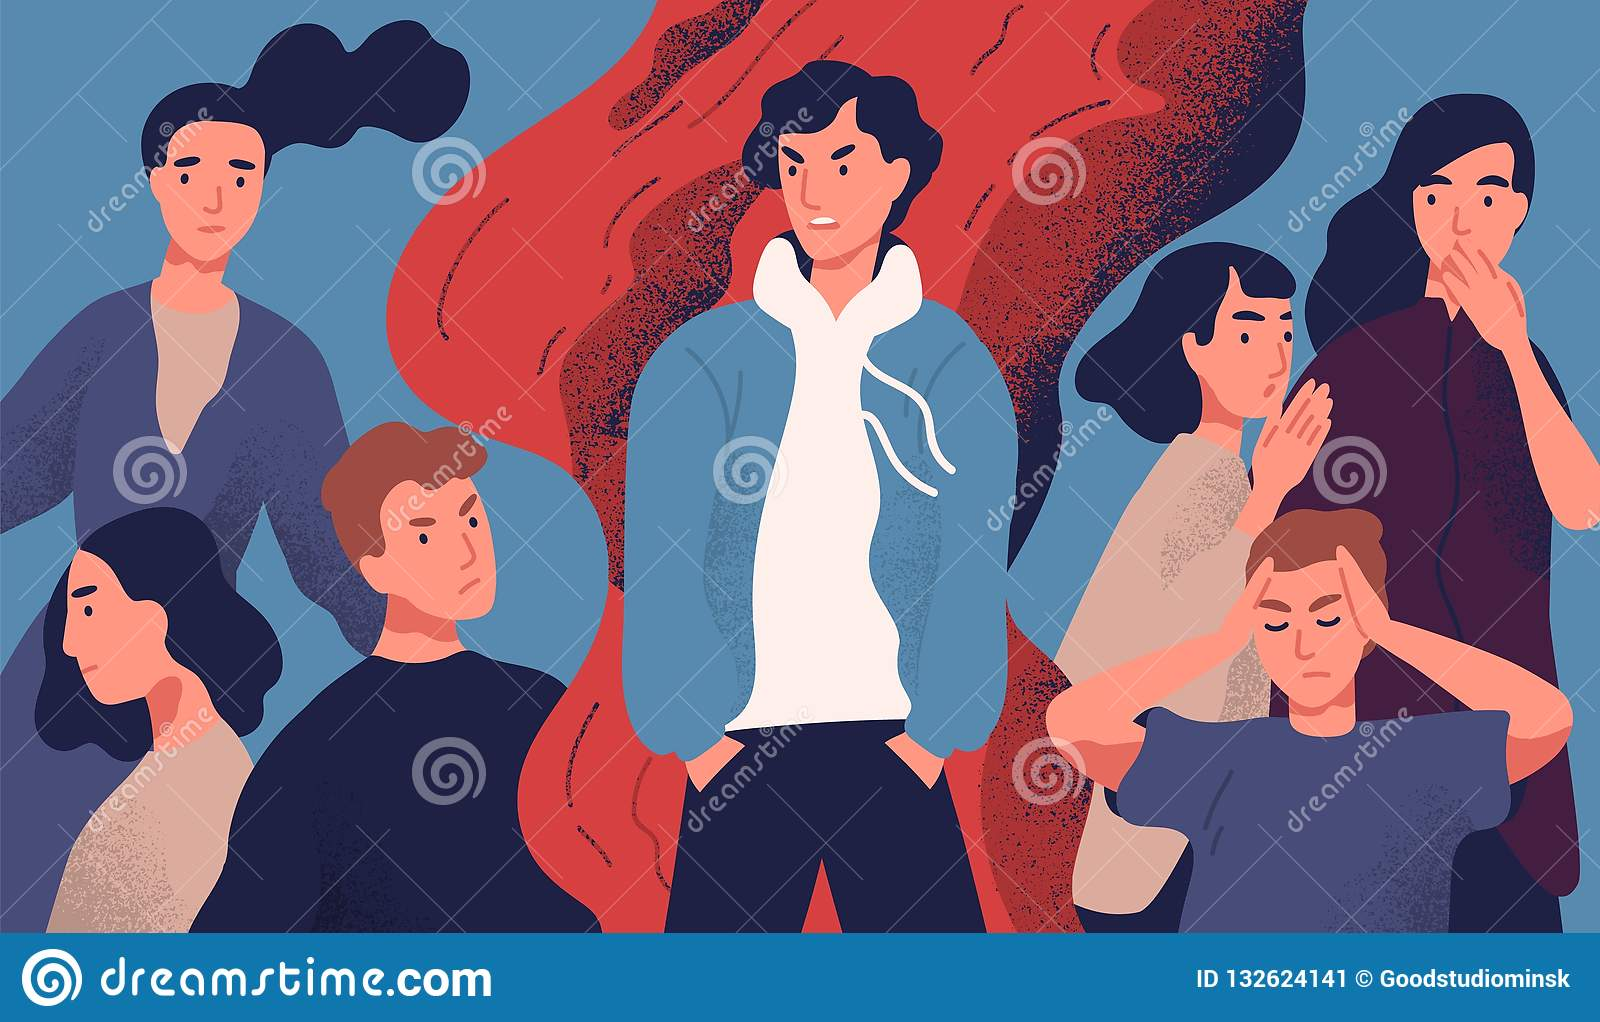 Selfish young man rejected by society because of his annoying behavior. Concept of psychological problem, communication